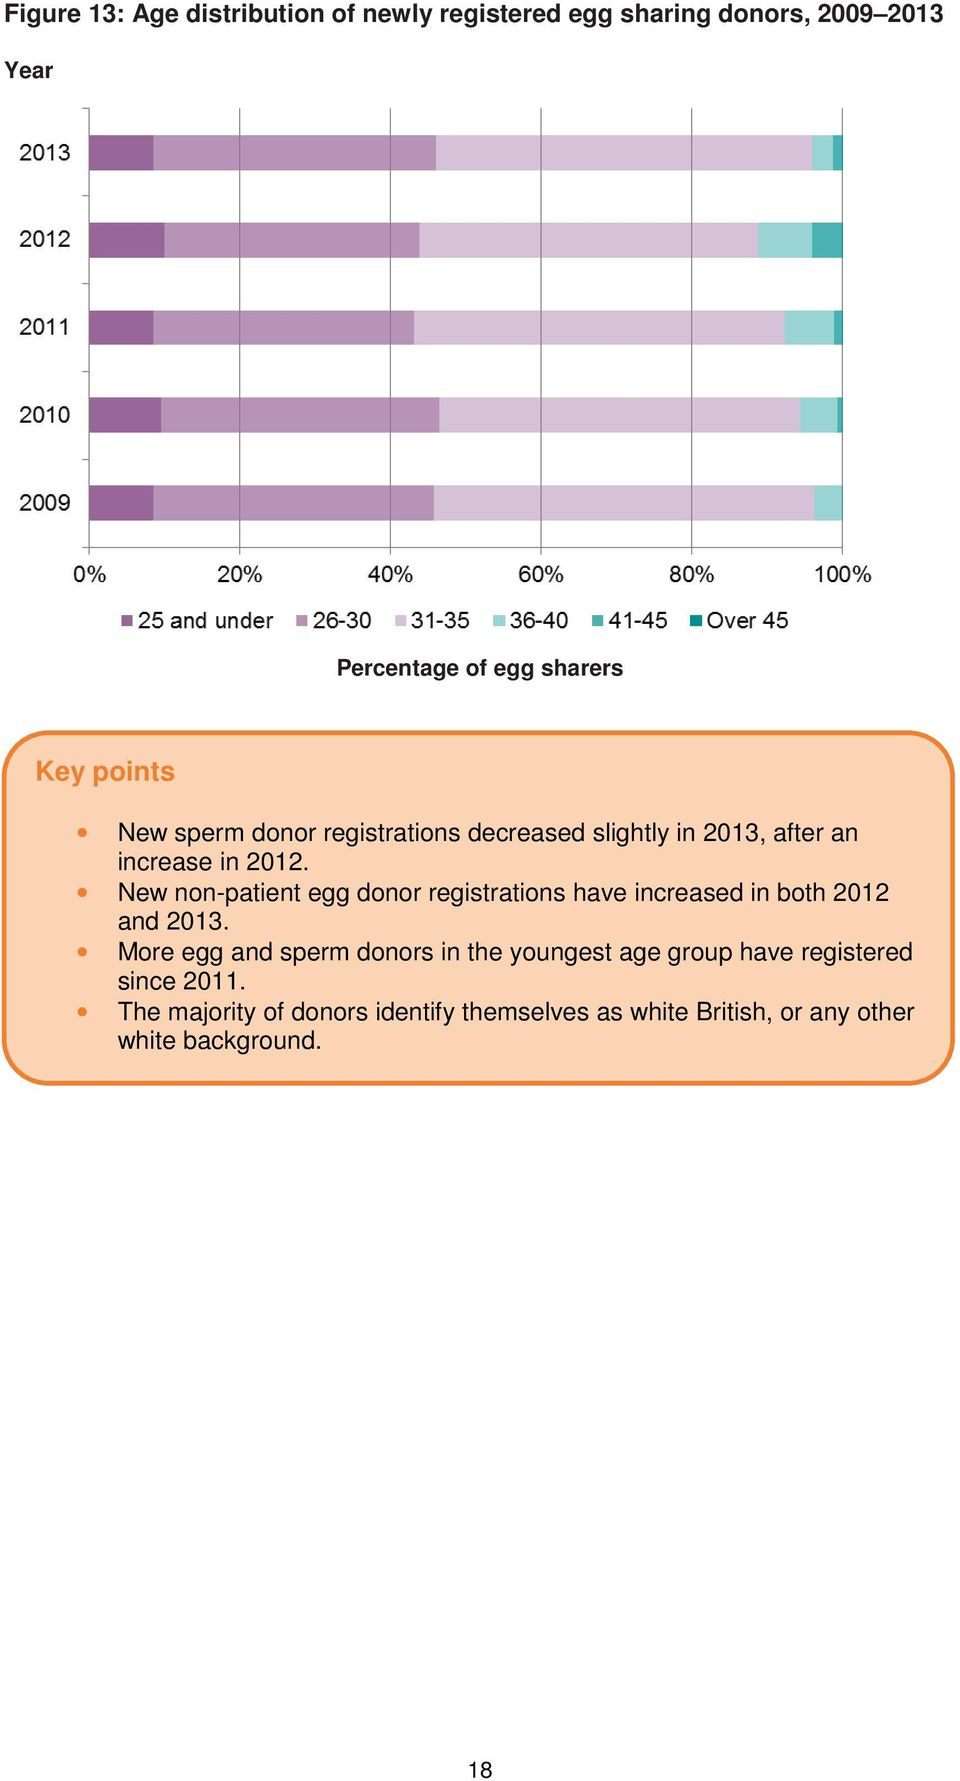 New non-patient egg donor registrations have increased in both 2012 and 2013.